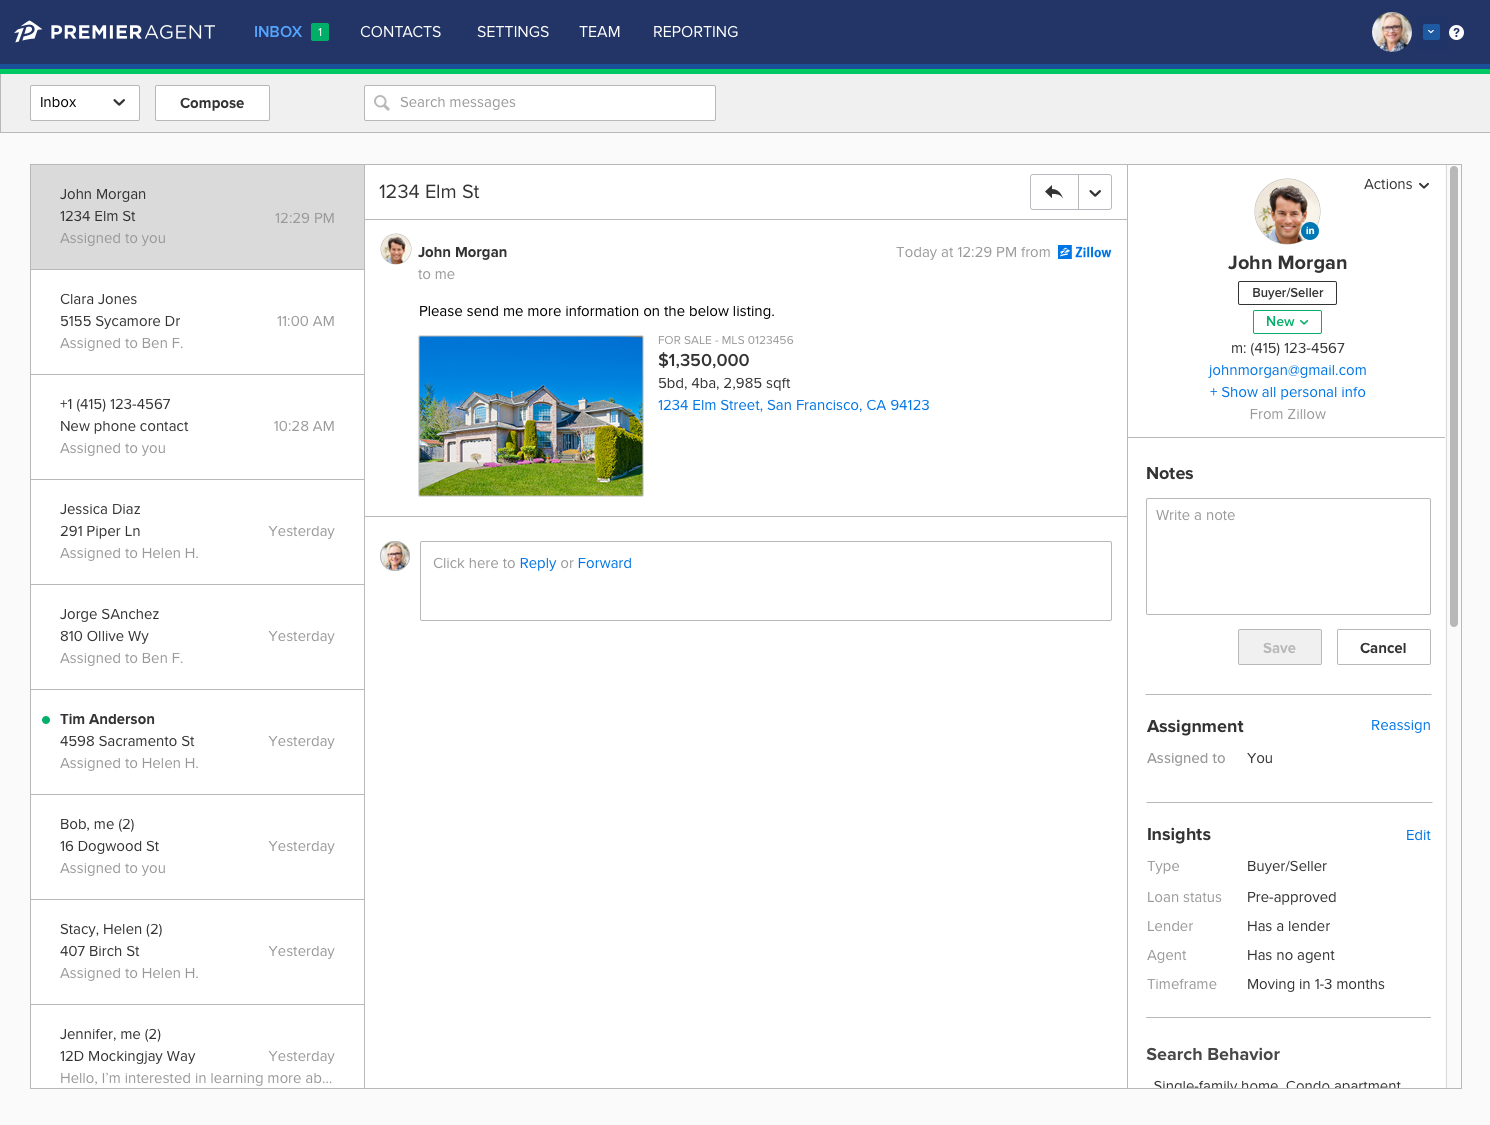 Contact Insights Are Displayed On The Right